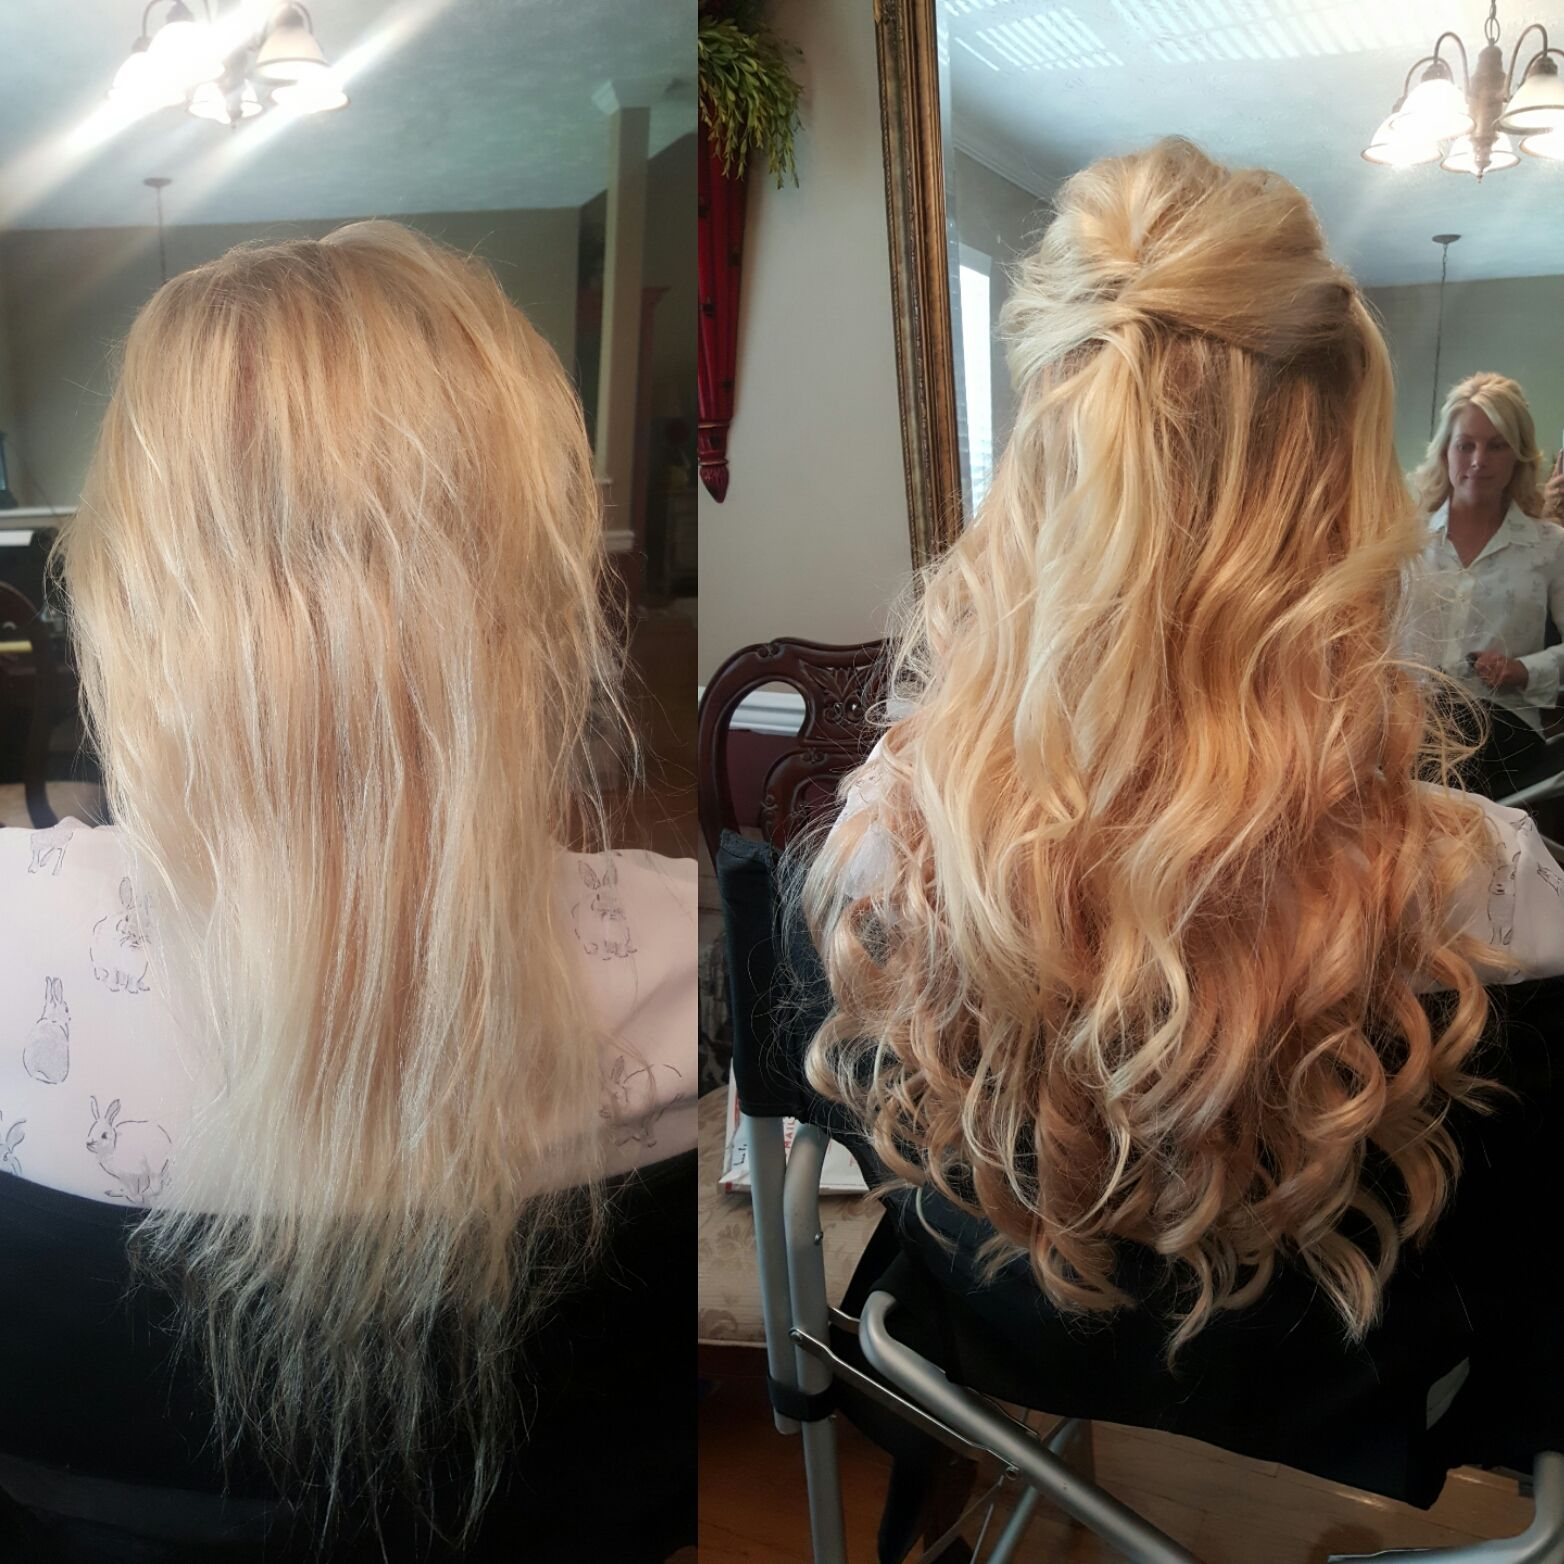 What A Transformation Before And After Using Our Halo Style Hidden Crown Hair Extensions For Hair Extensions Before And After Hair Styles Halo Hair Extensions